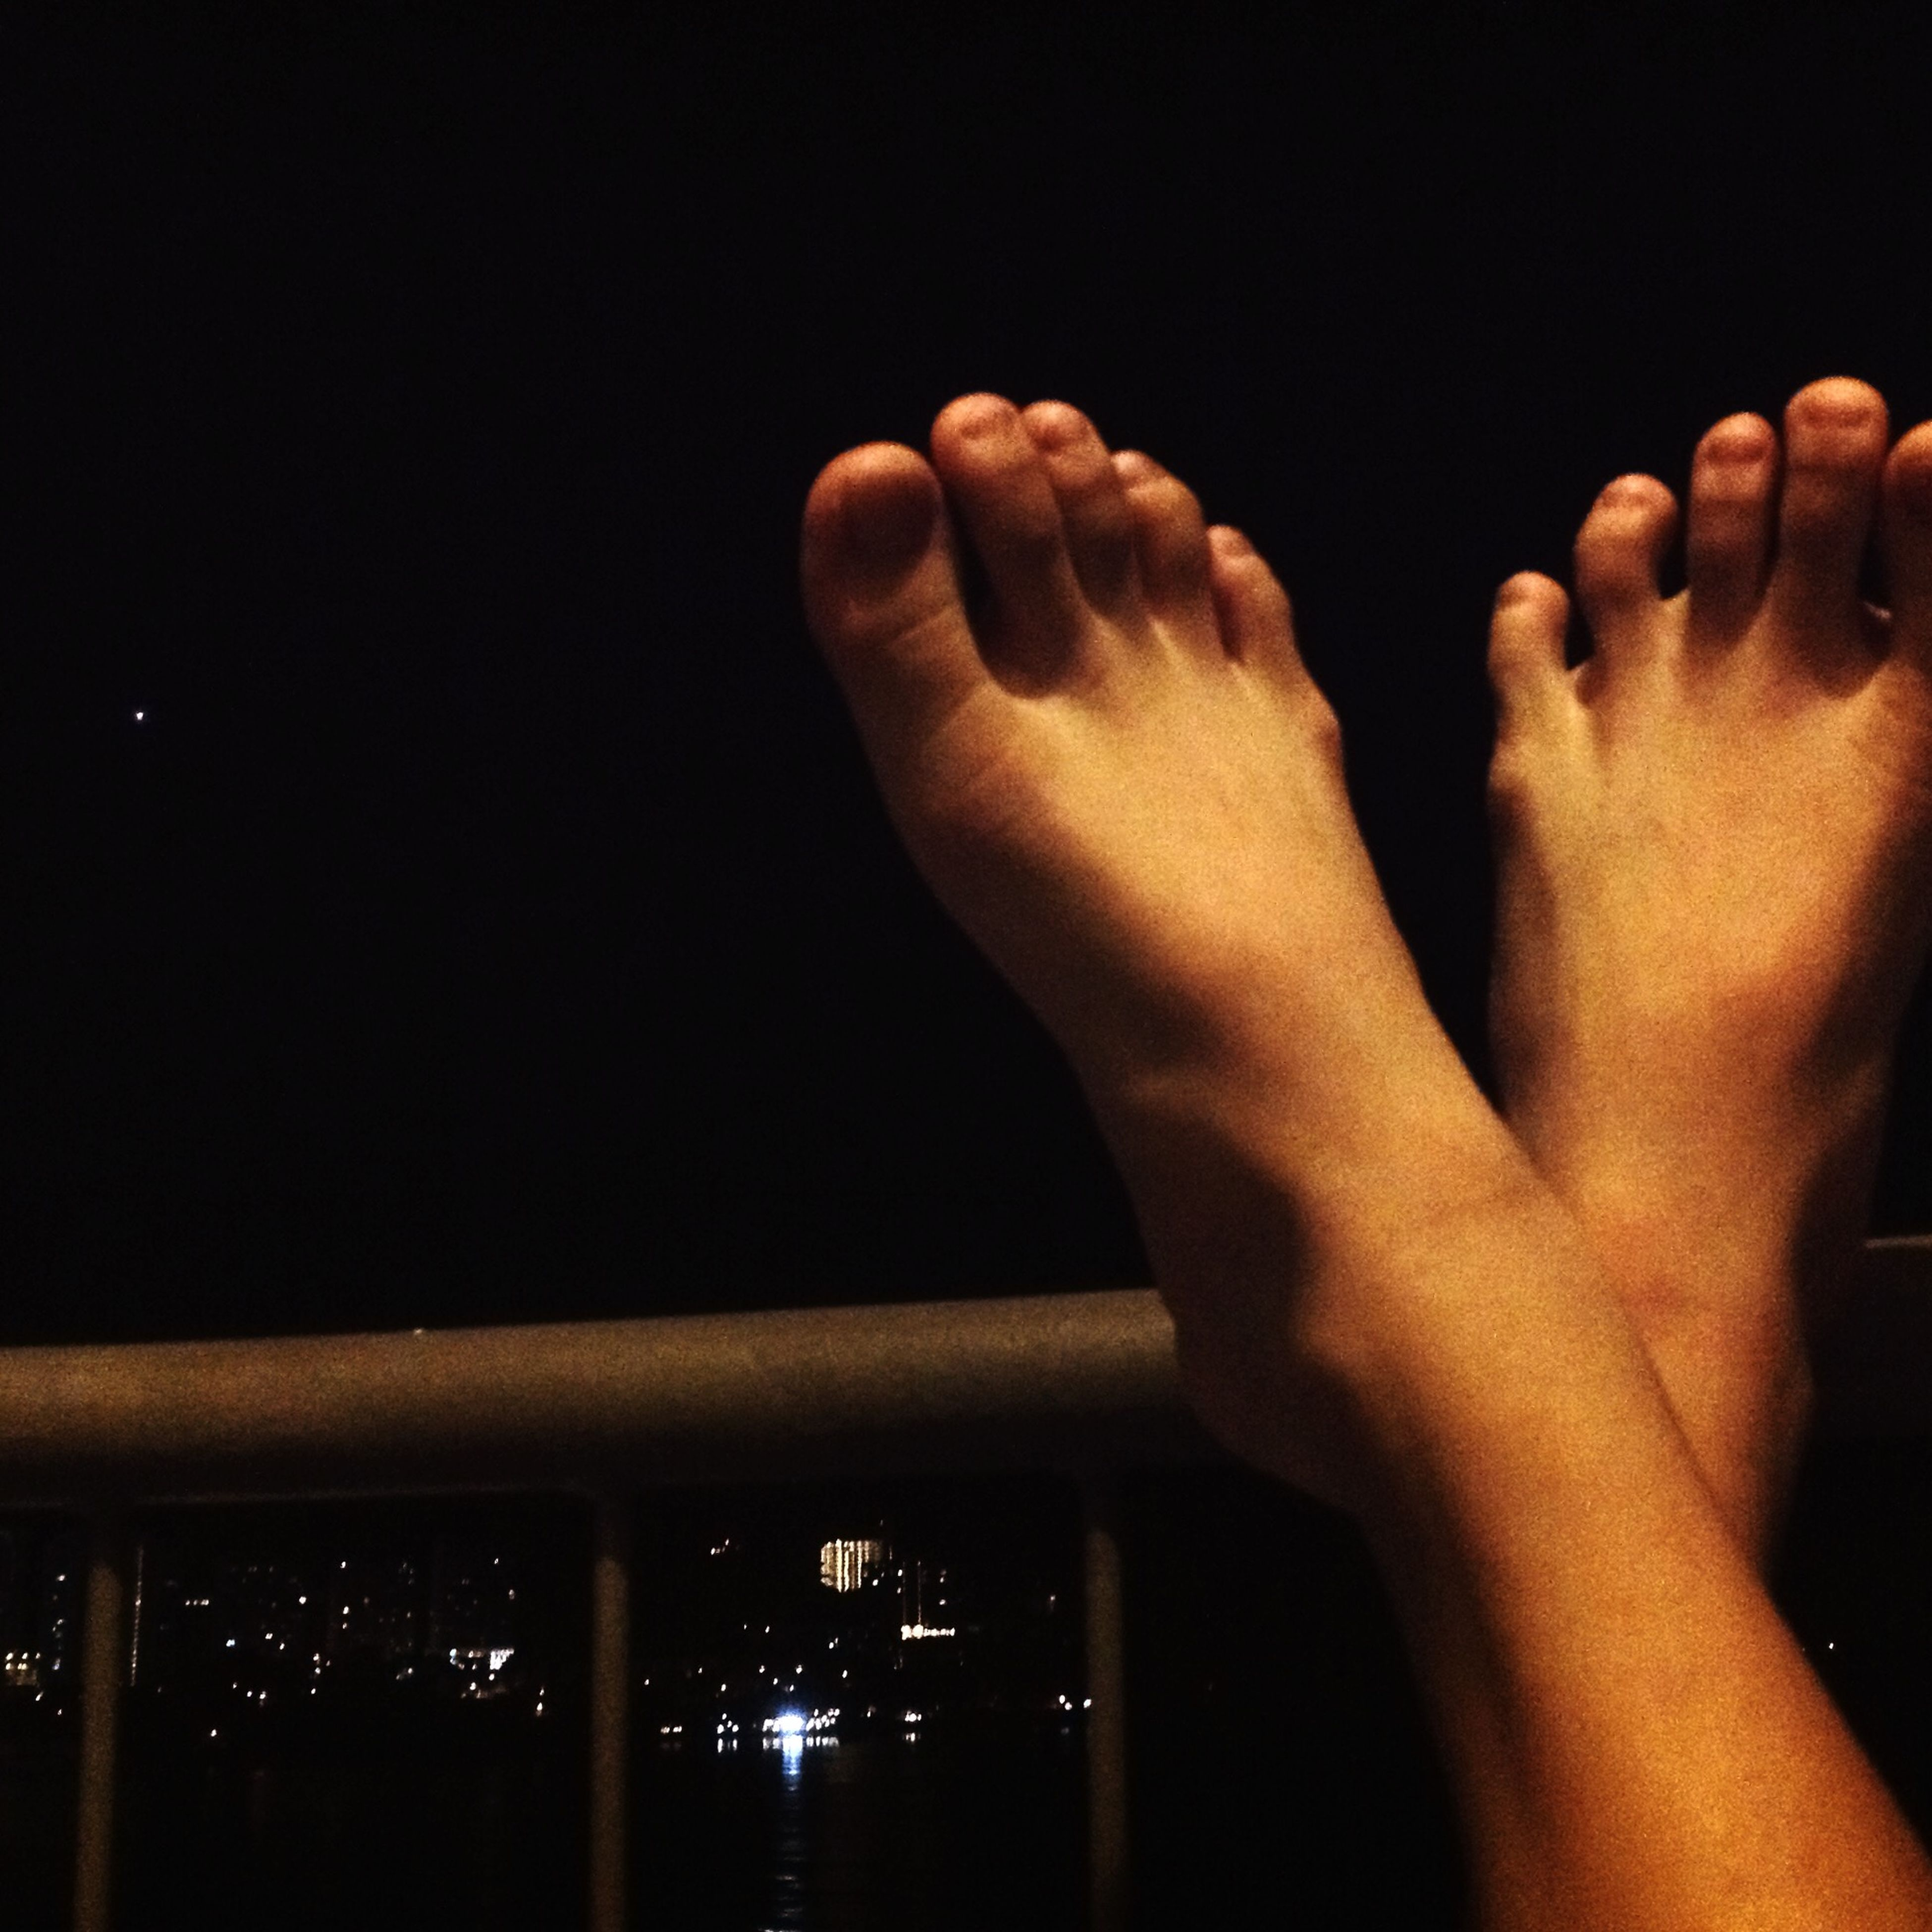 person, part of, human finger, indoors, lifestyles, personal perspective, cropped, leisure activity, unrecognizable person, men, close-up, barefoot, human foot, holding, silhouette